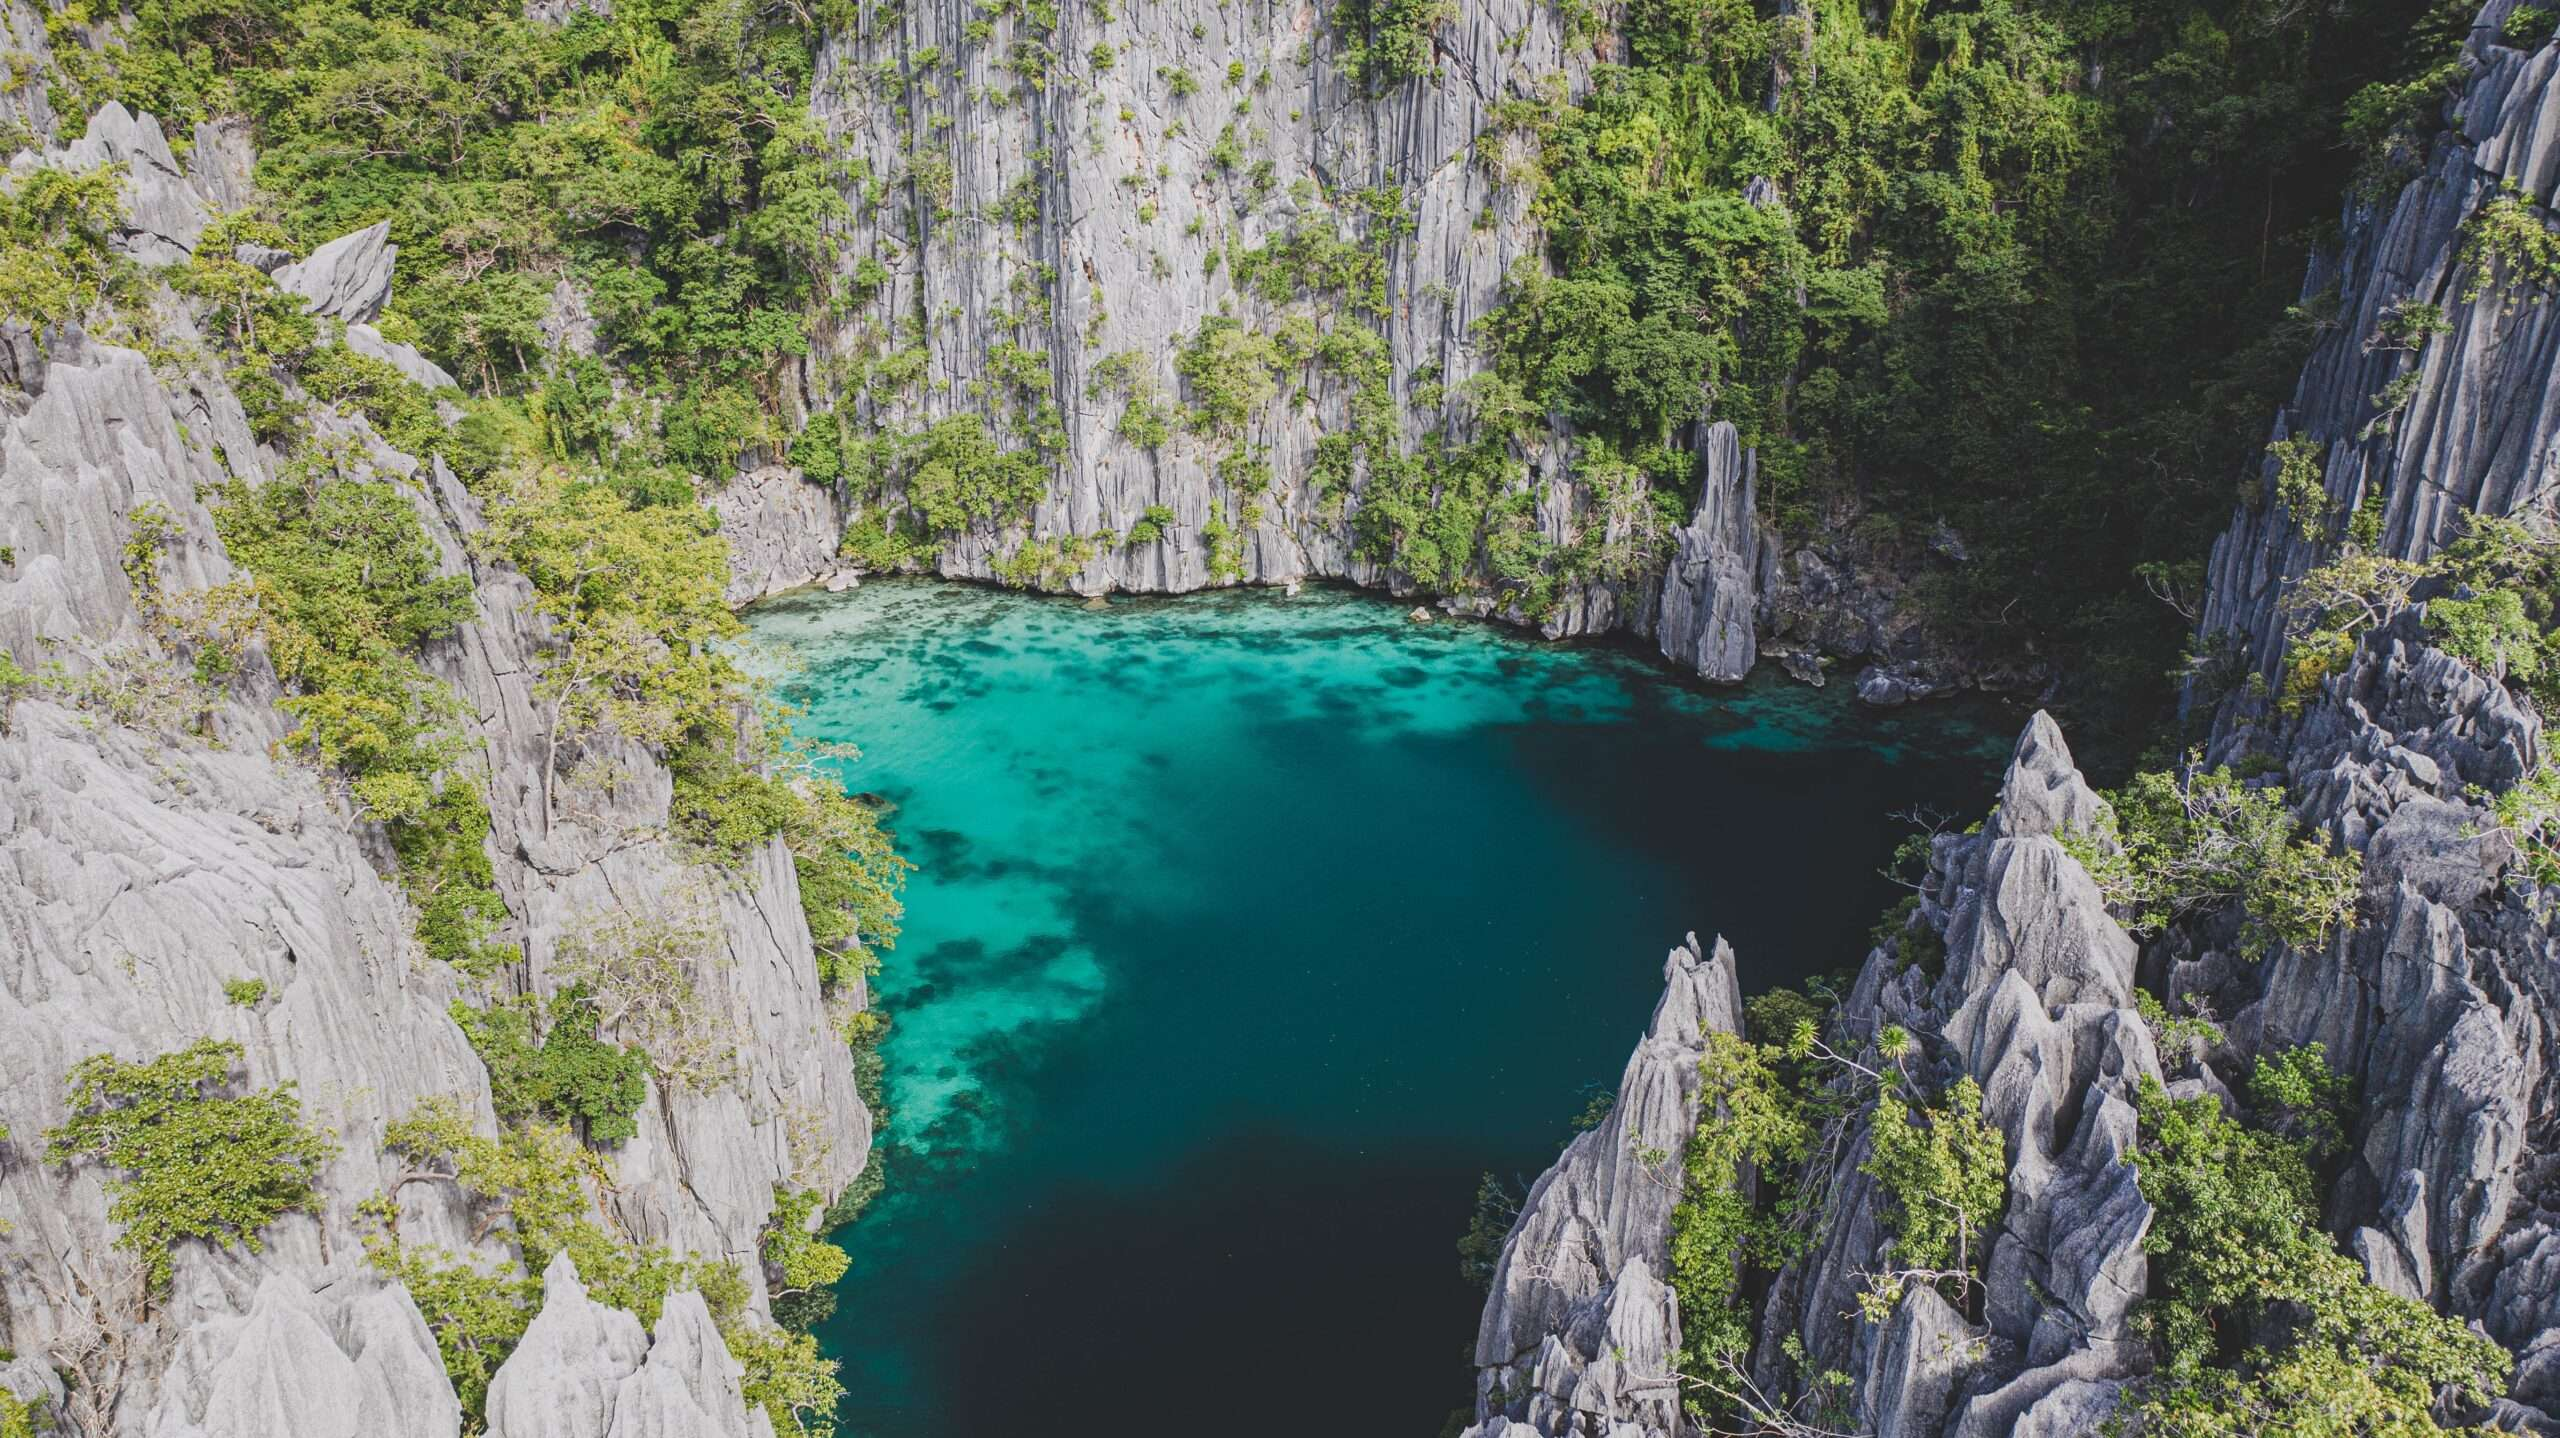 turquoise lagoon surrounded by karst rocks, seen on an island hopping tour in coron